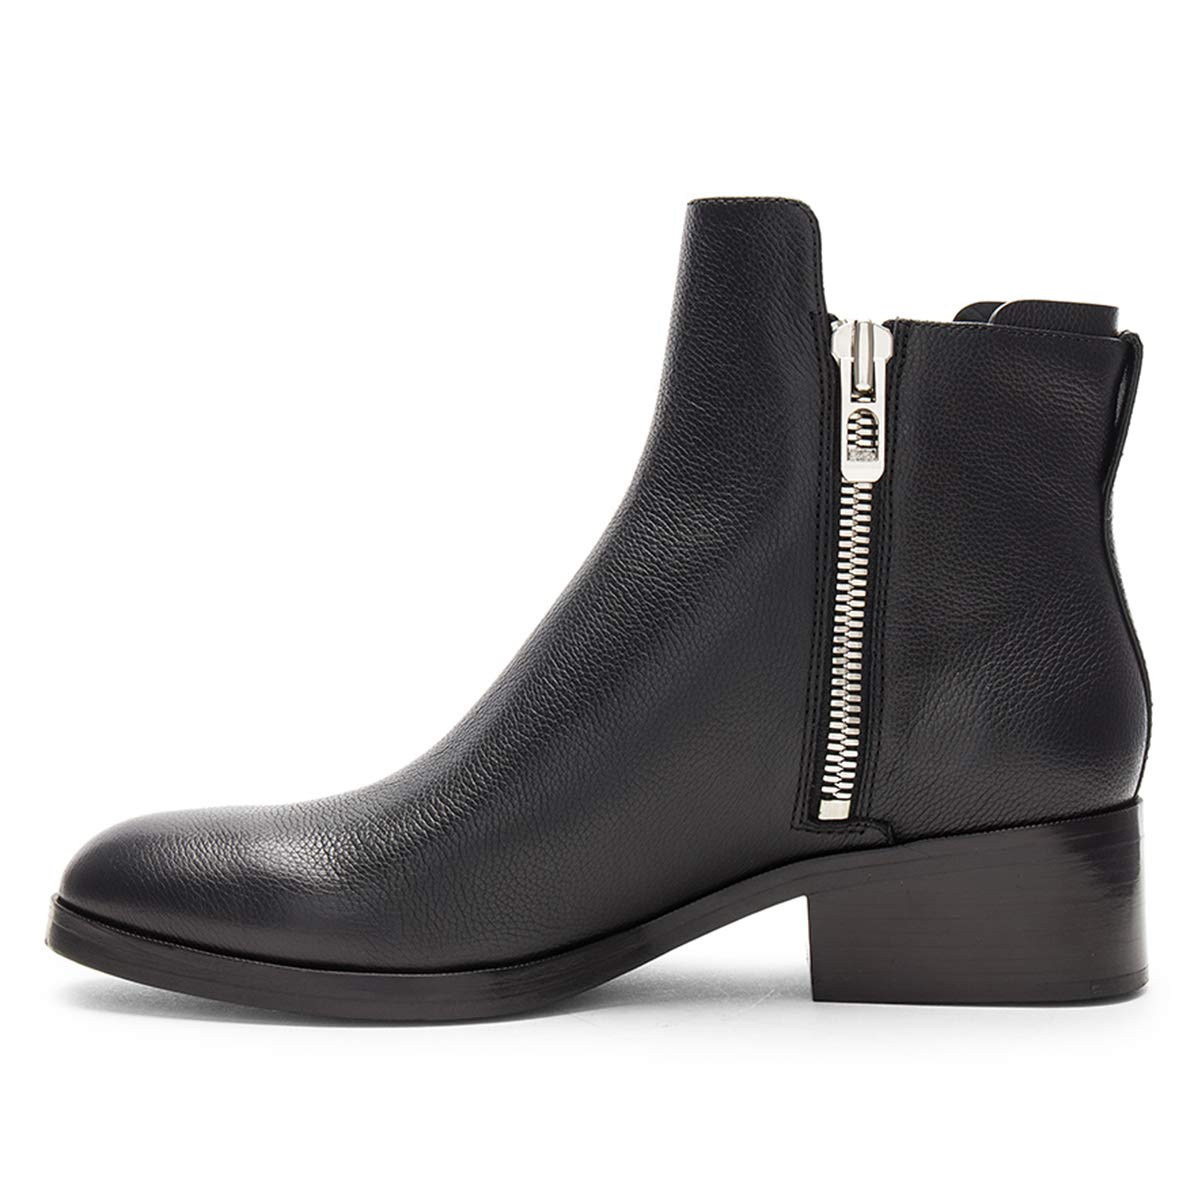 YDN Women Western Low Heel Combat Ankle Boots Round Toe Booties Shoes with Side Zips